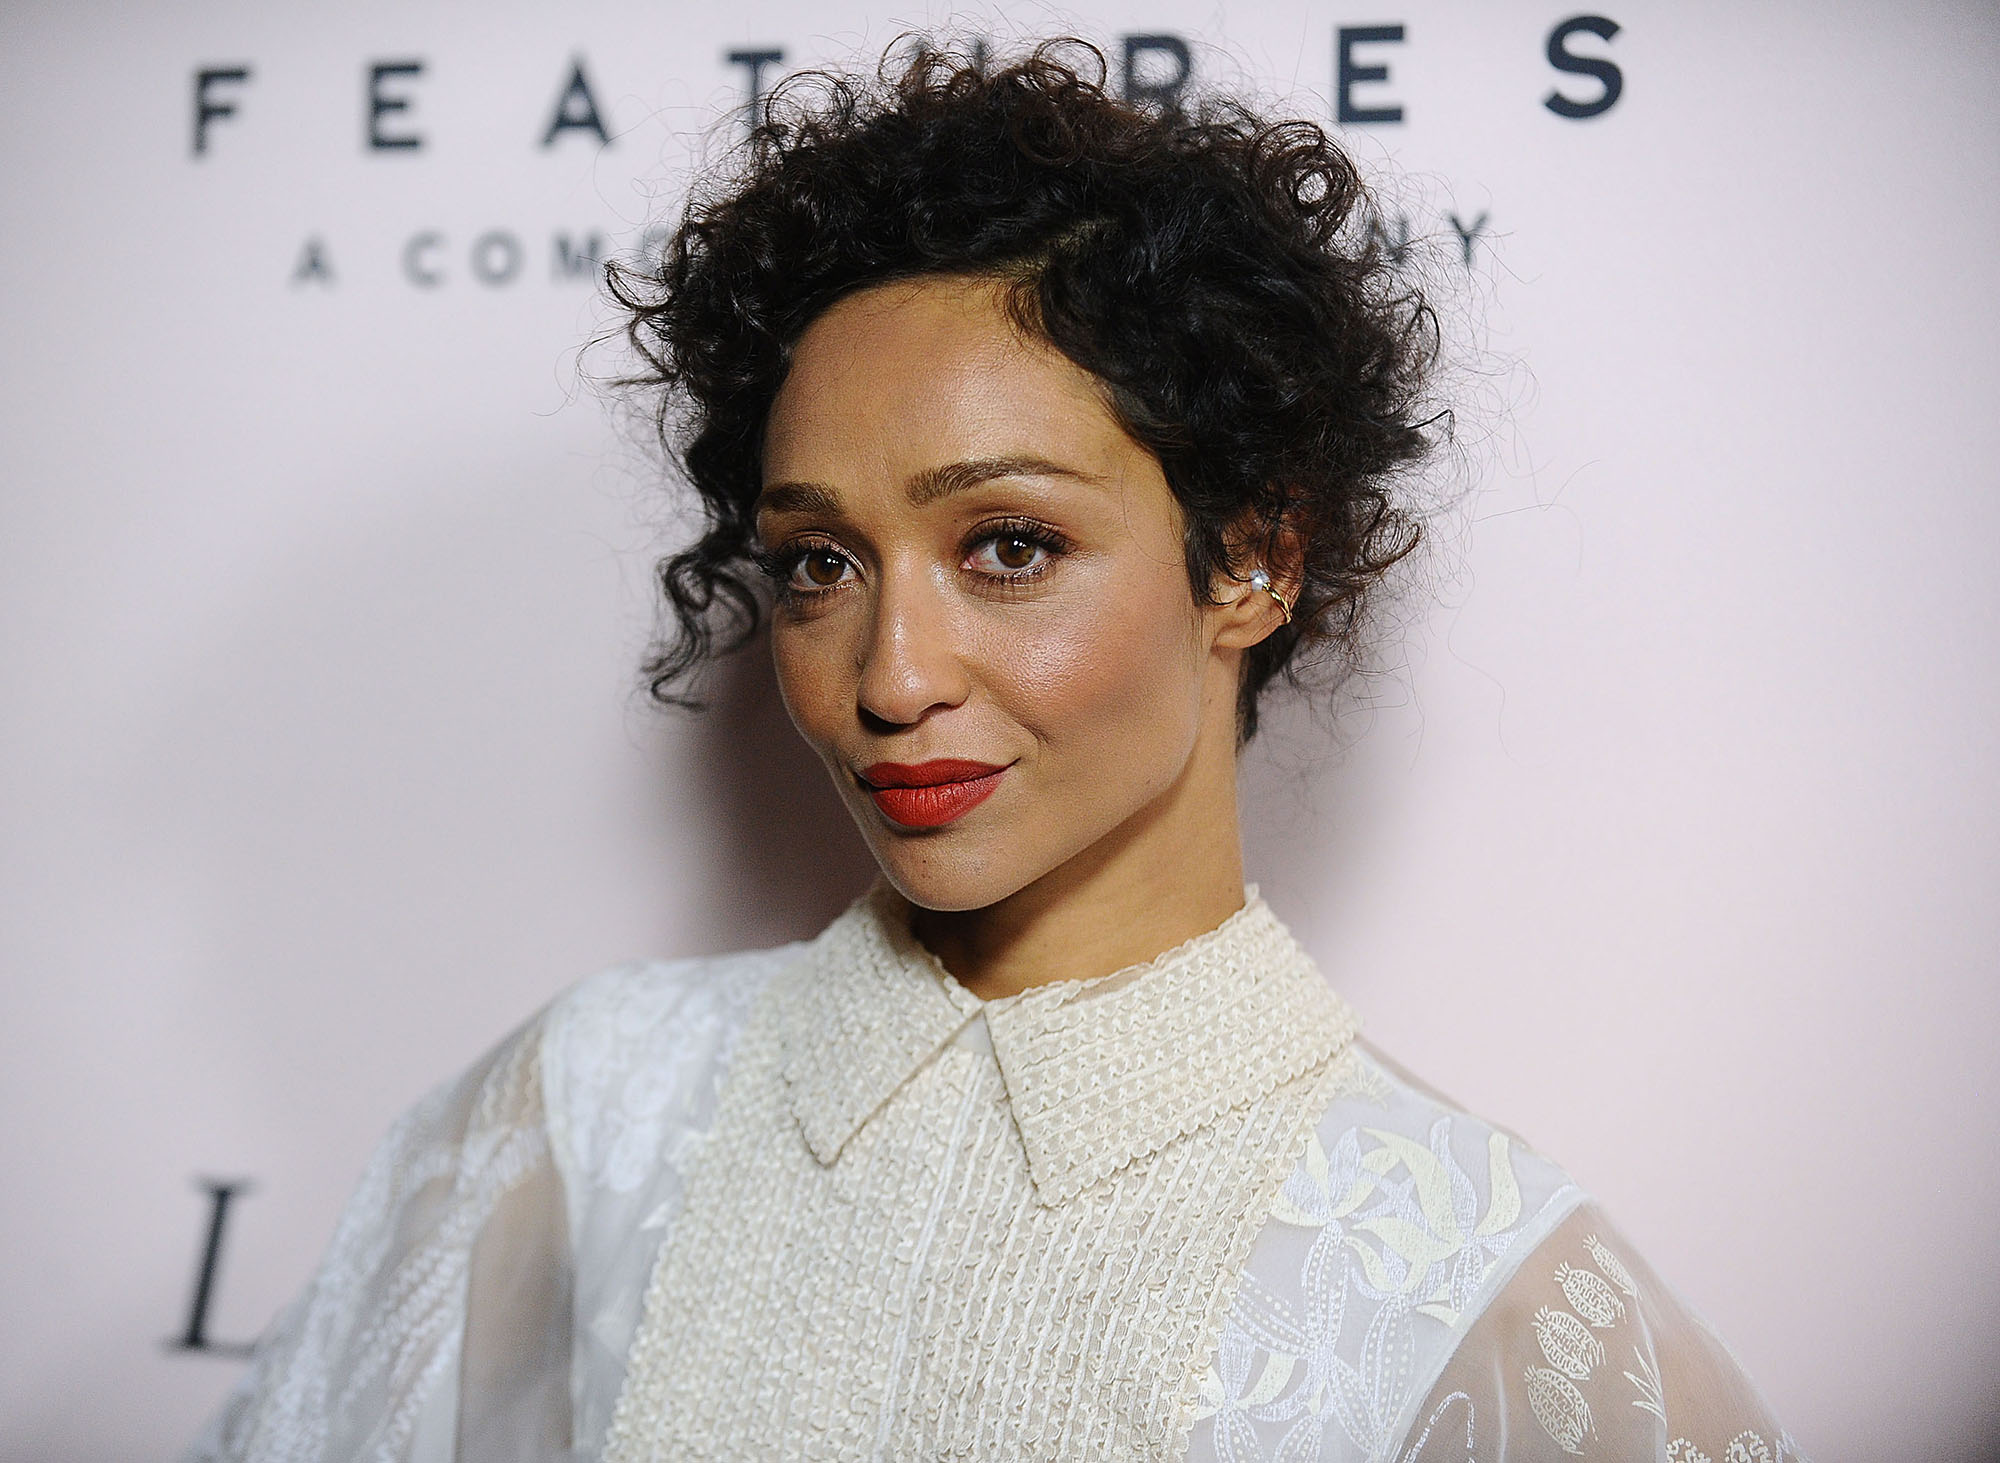 Ruth Negga attends the premiere of  Loving  at Samuel Goldwyn Theater on October 20, 2016 in Beverly Hills, California.  (Photo by Jason LaVeris/FilmMagic)